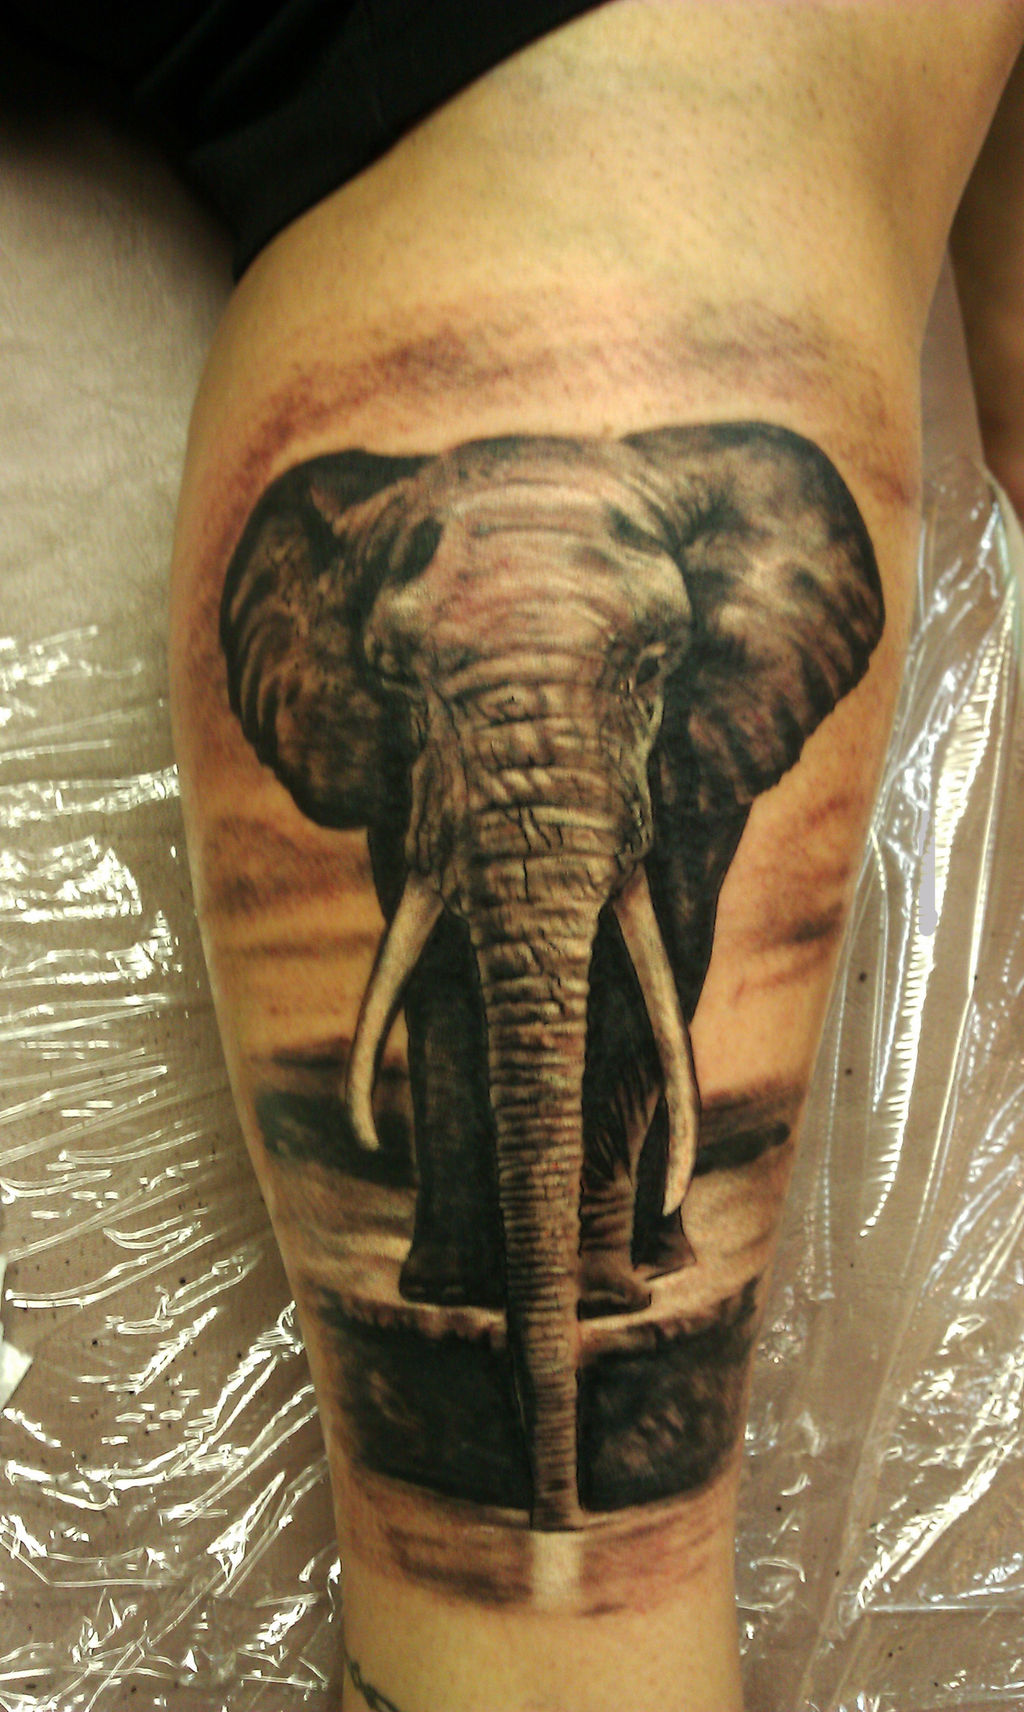 Best tattoo artist austin tx bestblack and grey best for Best realism tattoo artist